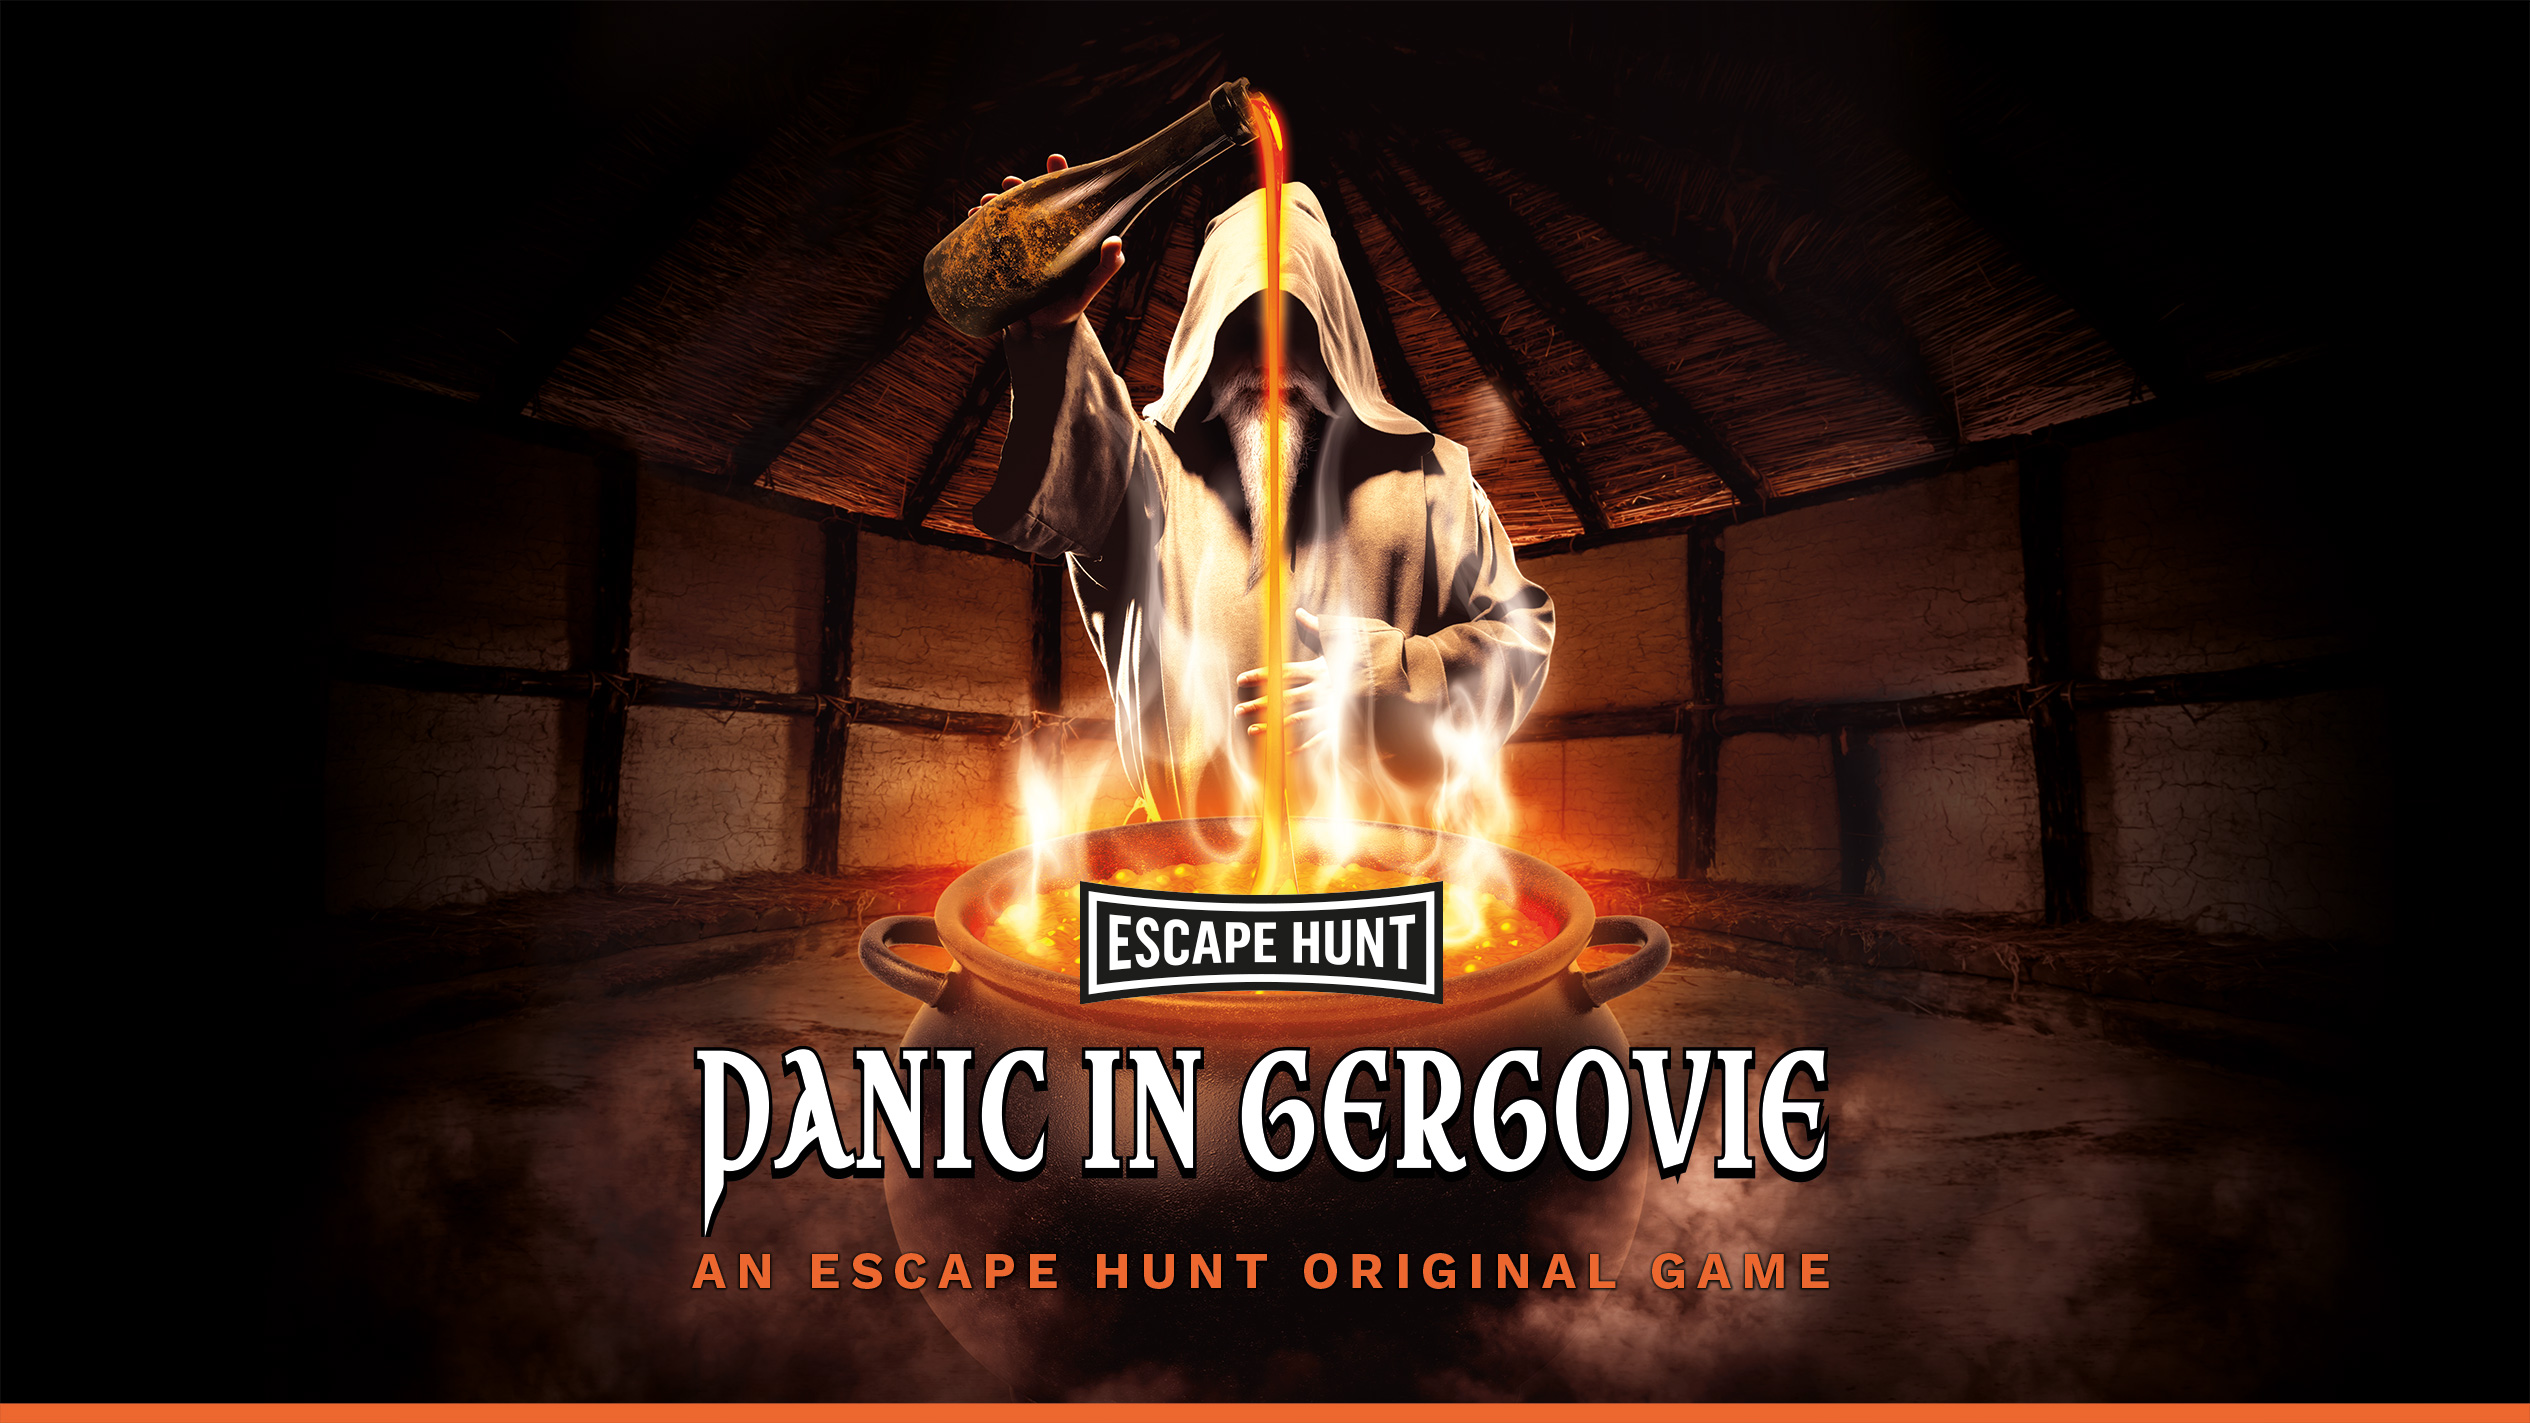 Escape Hunt Clermont Ferrand - Escape Game Clermont Ferrand Panic in Gergovie English